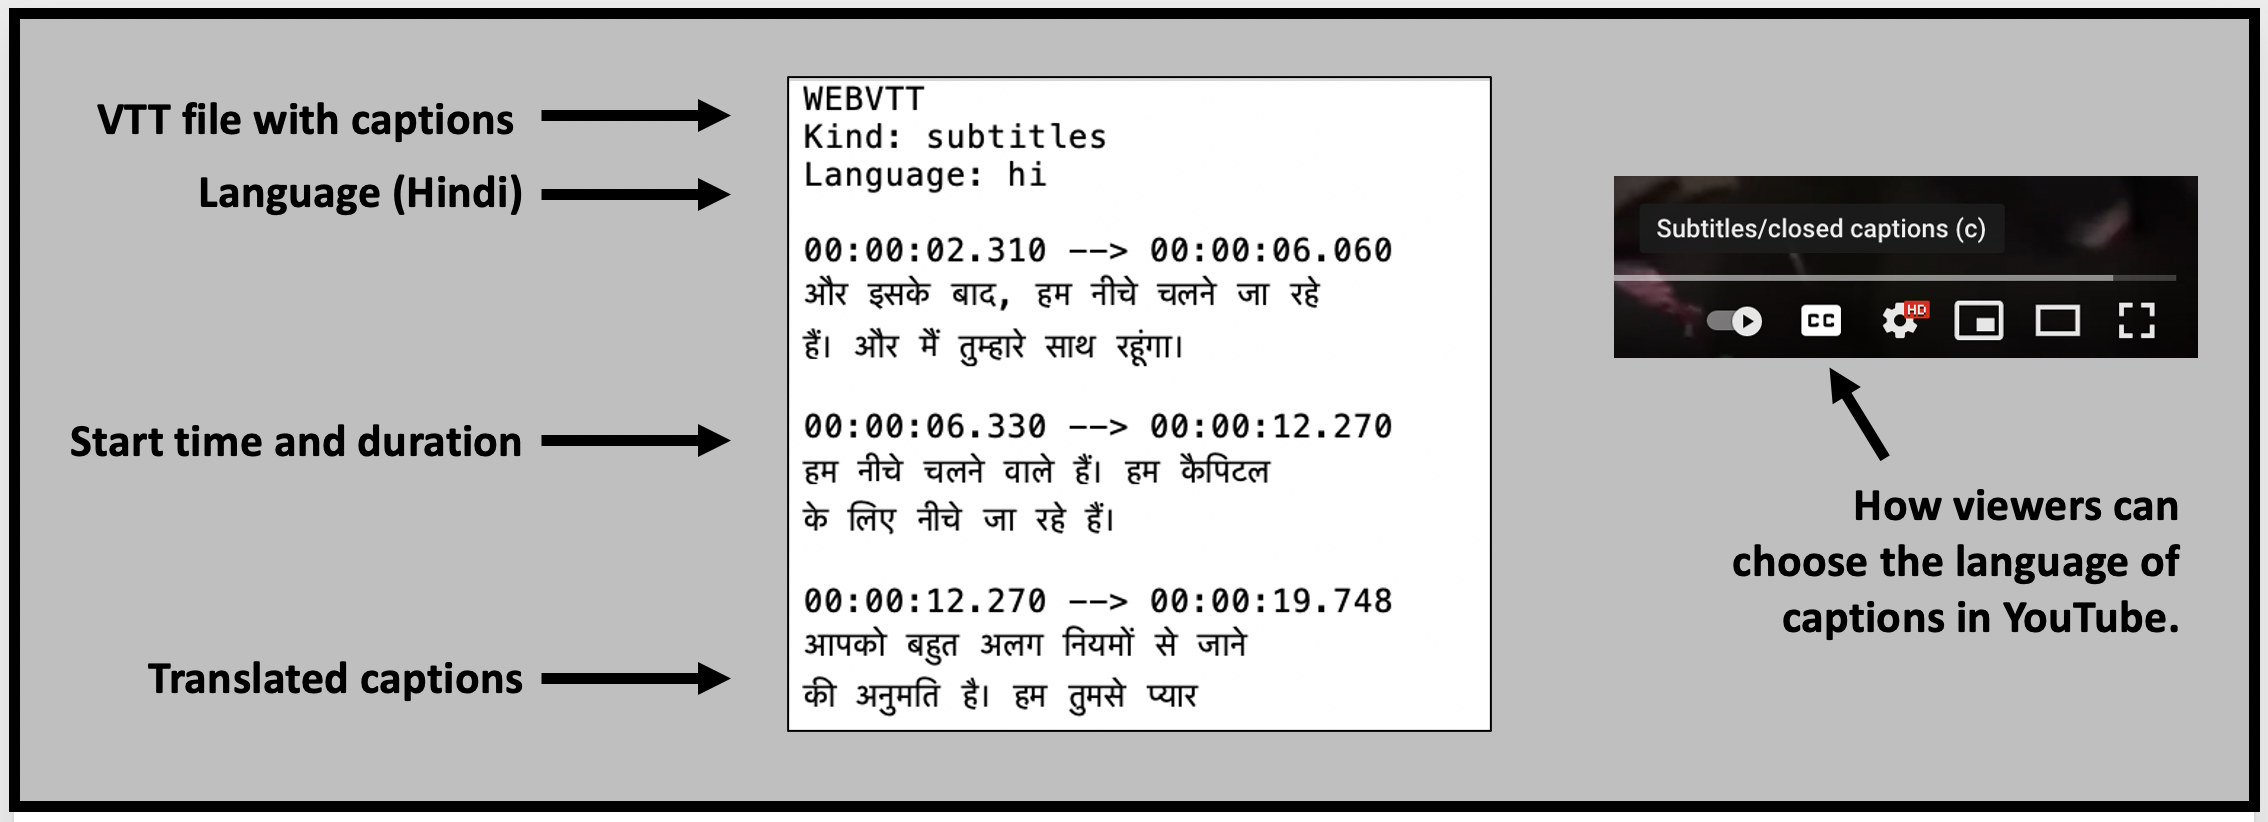 Web Video Text Tracks (WebVTT) files contain supplementary information about a web video, including subtitles, captions, descriptions, chapters, and metadata.